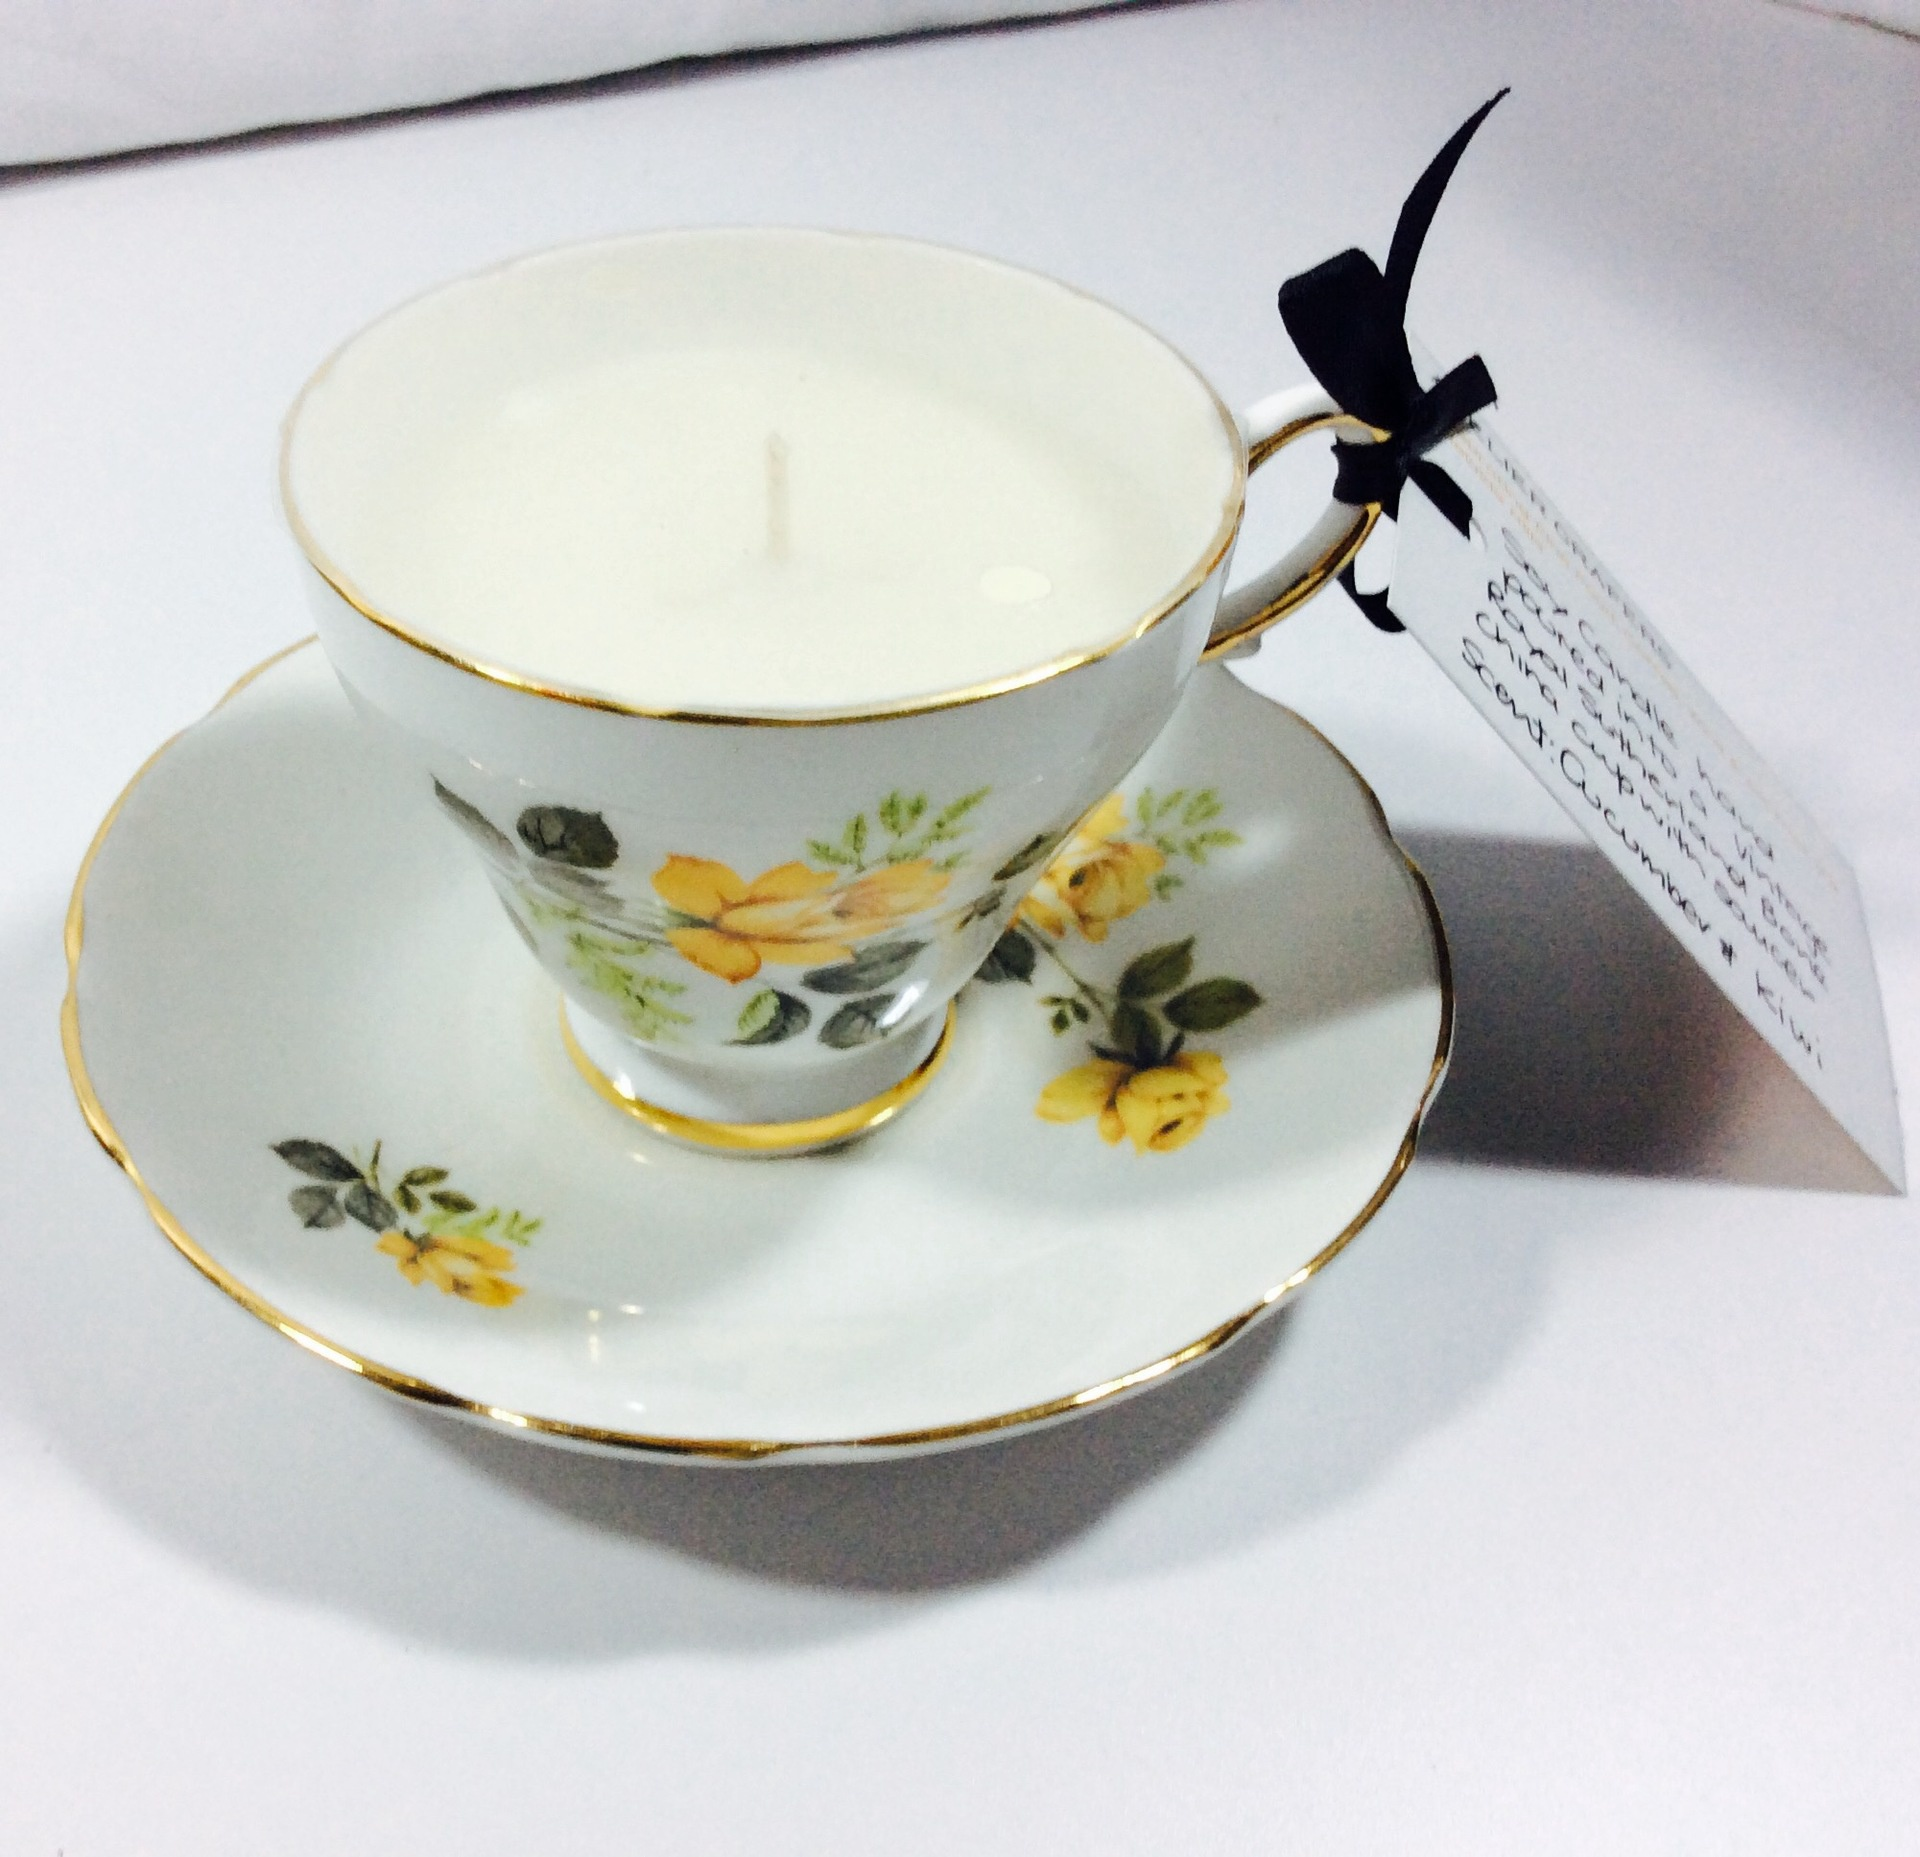 Vintage Tea Cup Candle - Royal Sutherland Cup & Saucer (1941-75) - Cucumber Kiwi